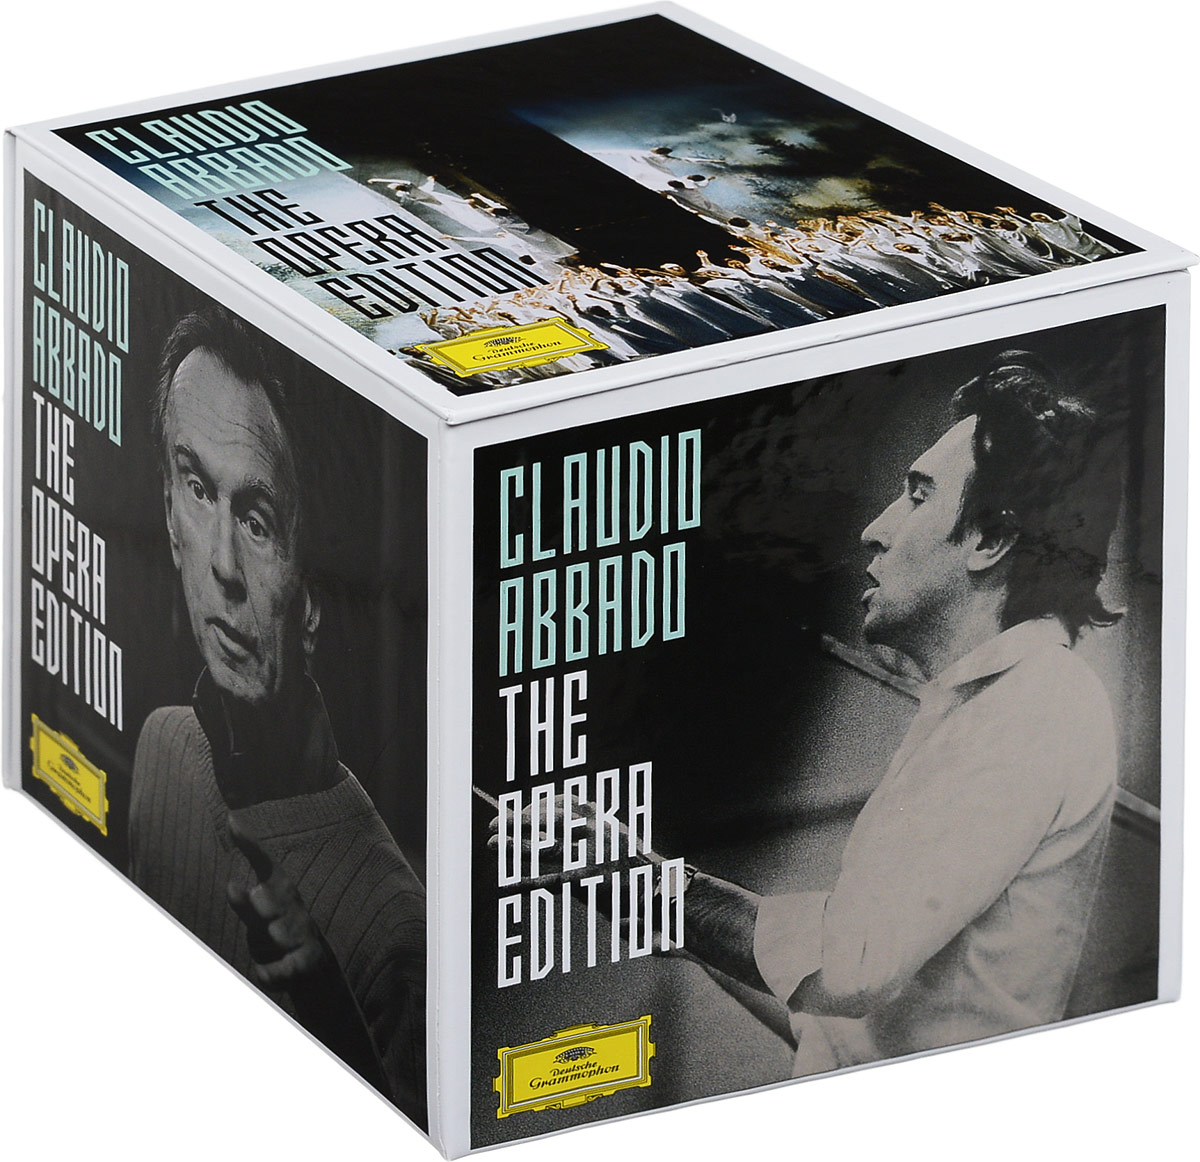 Клаудио Аббадо Claudio Abbado. The Opera Edition (60 CD) claudio abbado sting prokofiev peter and the wolf